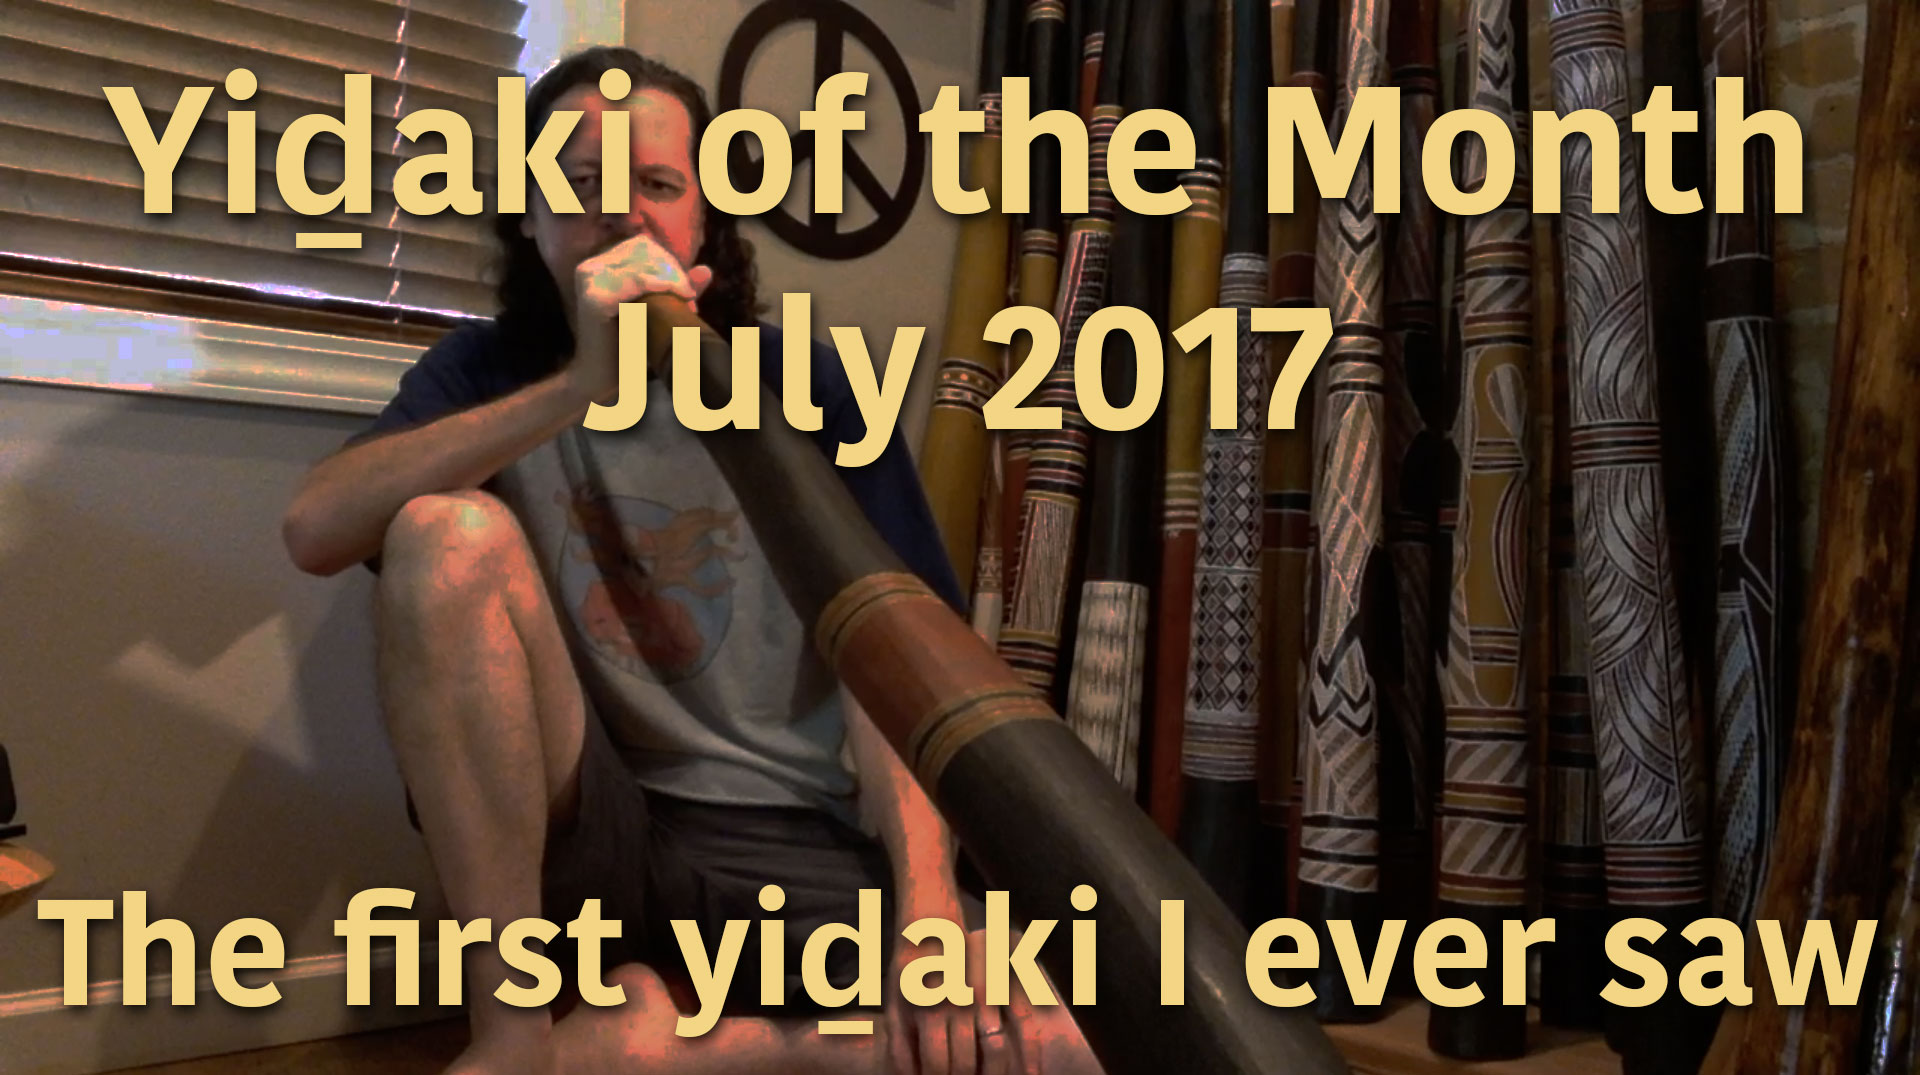 Yidaki of the Month #1